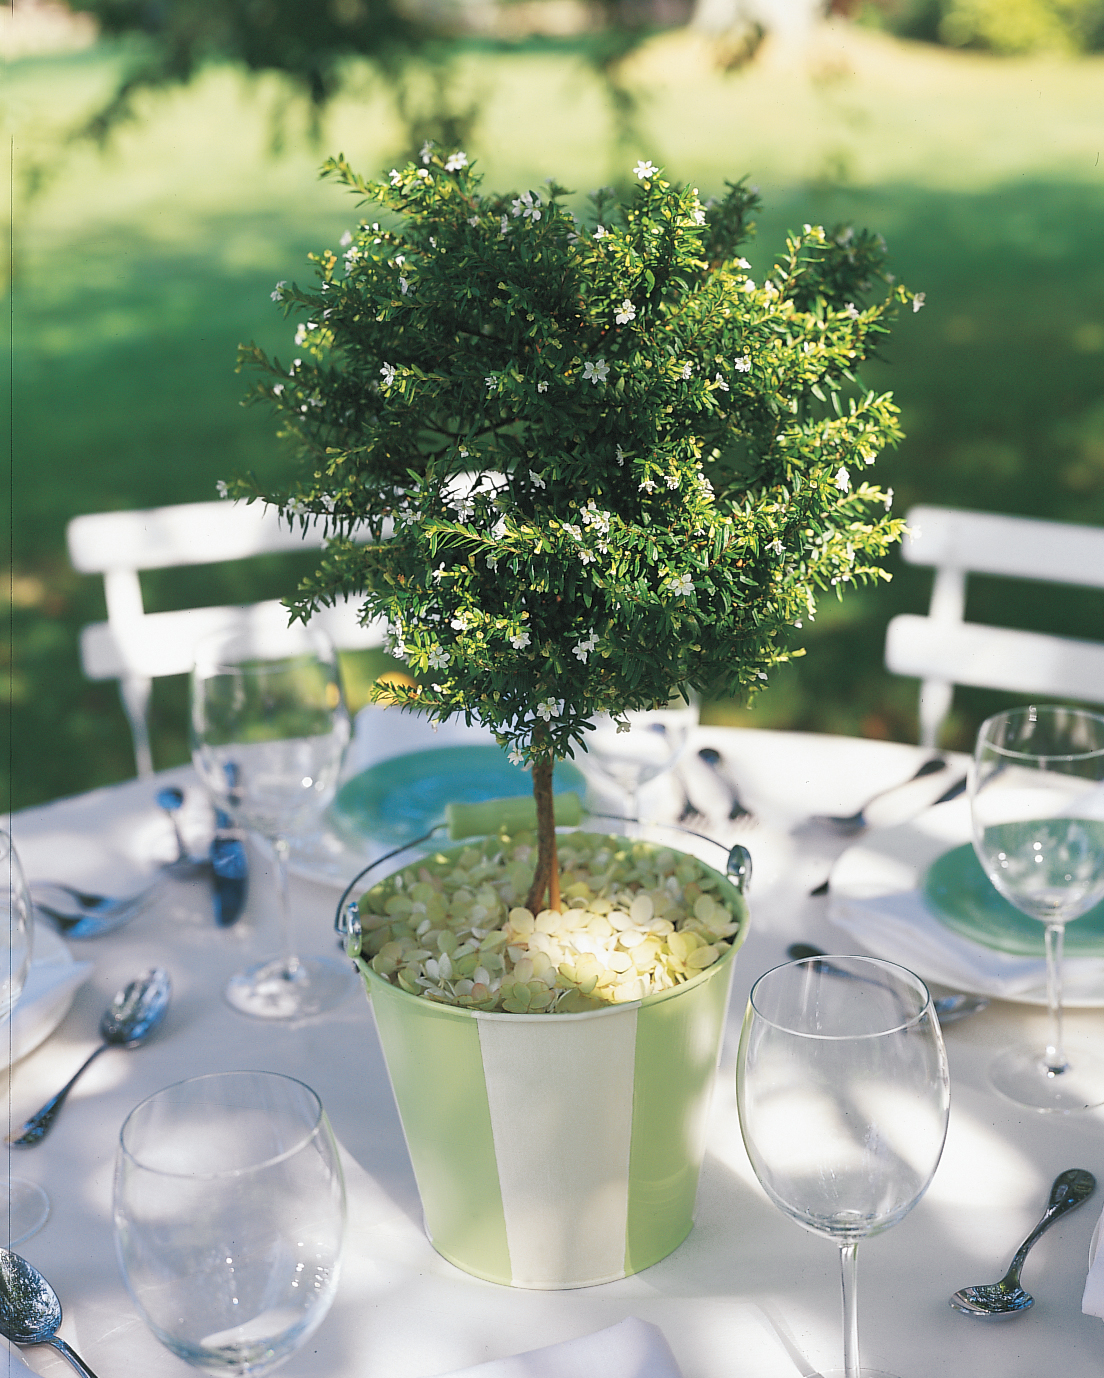 diy-beach-wedding-ideas-sand-bucket-tree-centerpiece-w98-0615.jpg